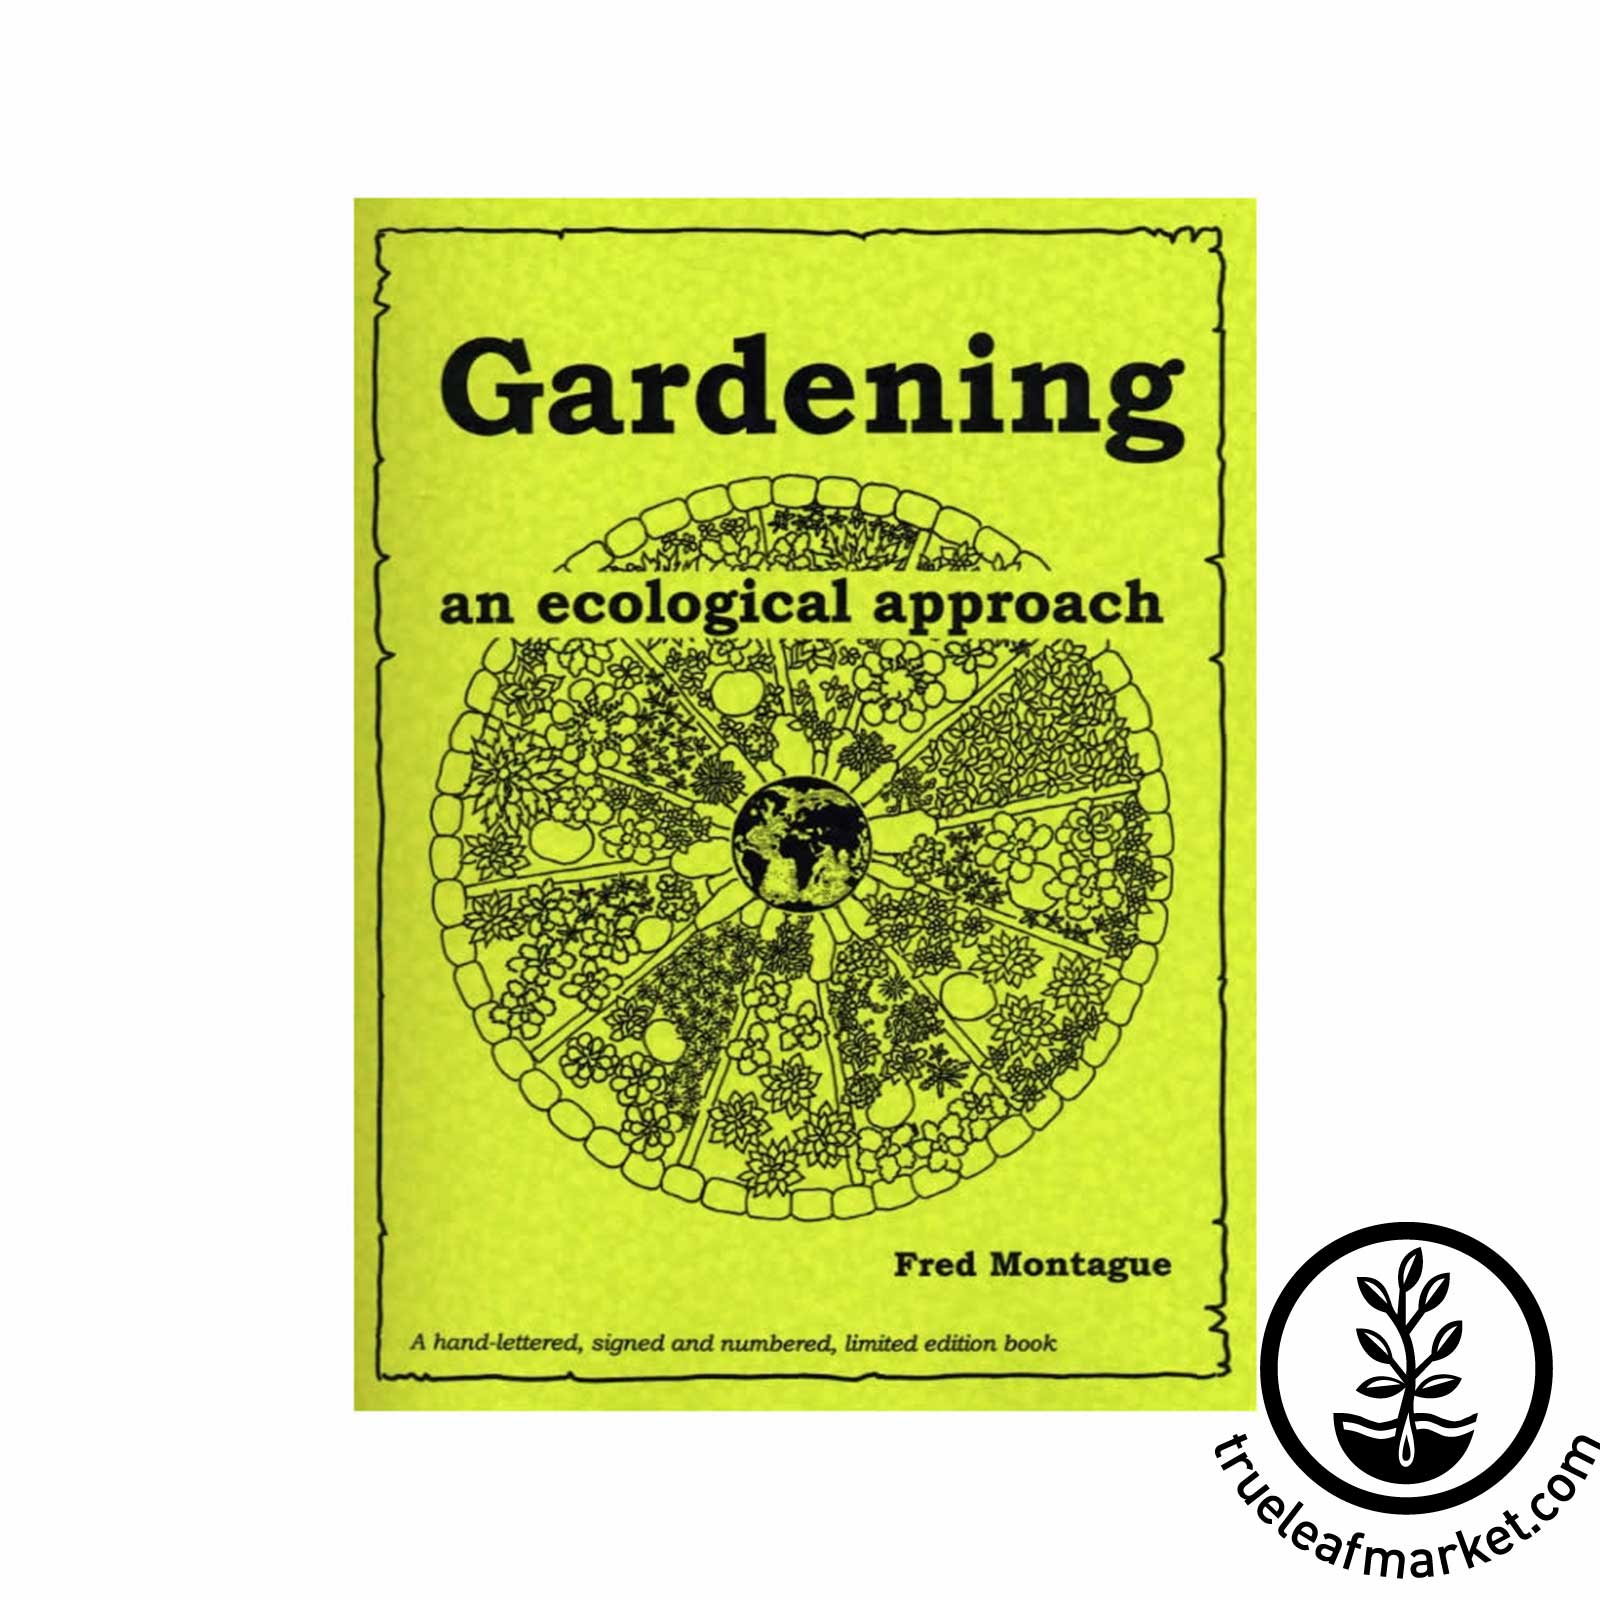 Book: Gardening - An Ecological Approach